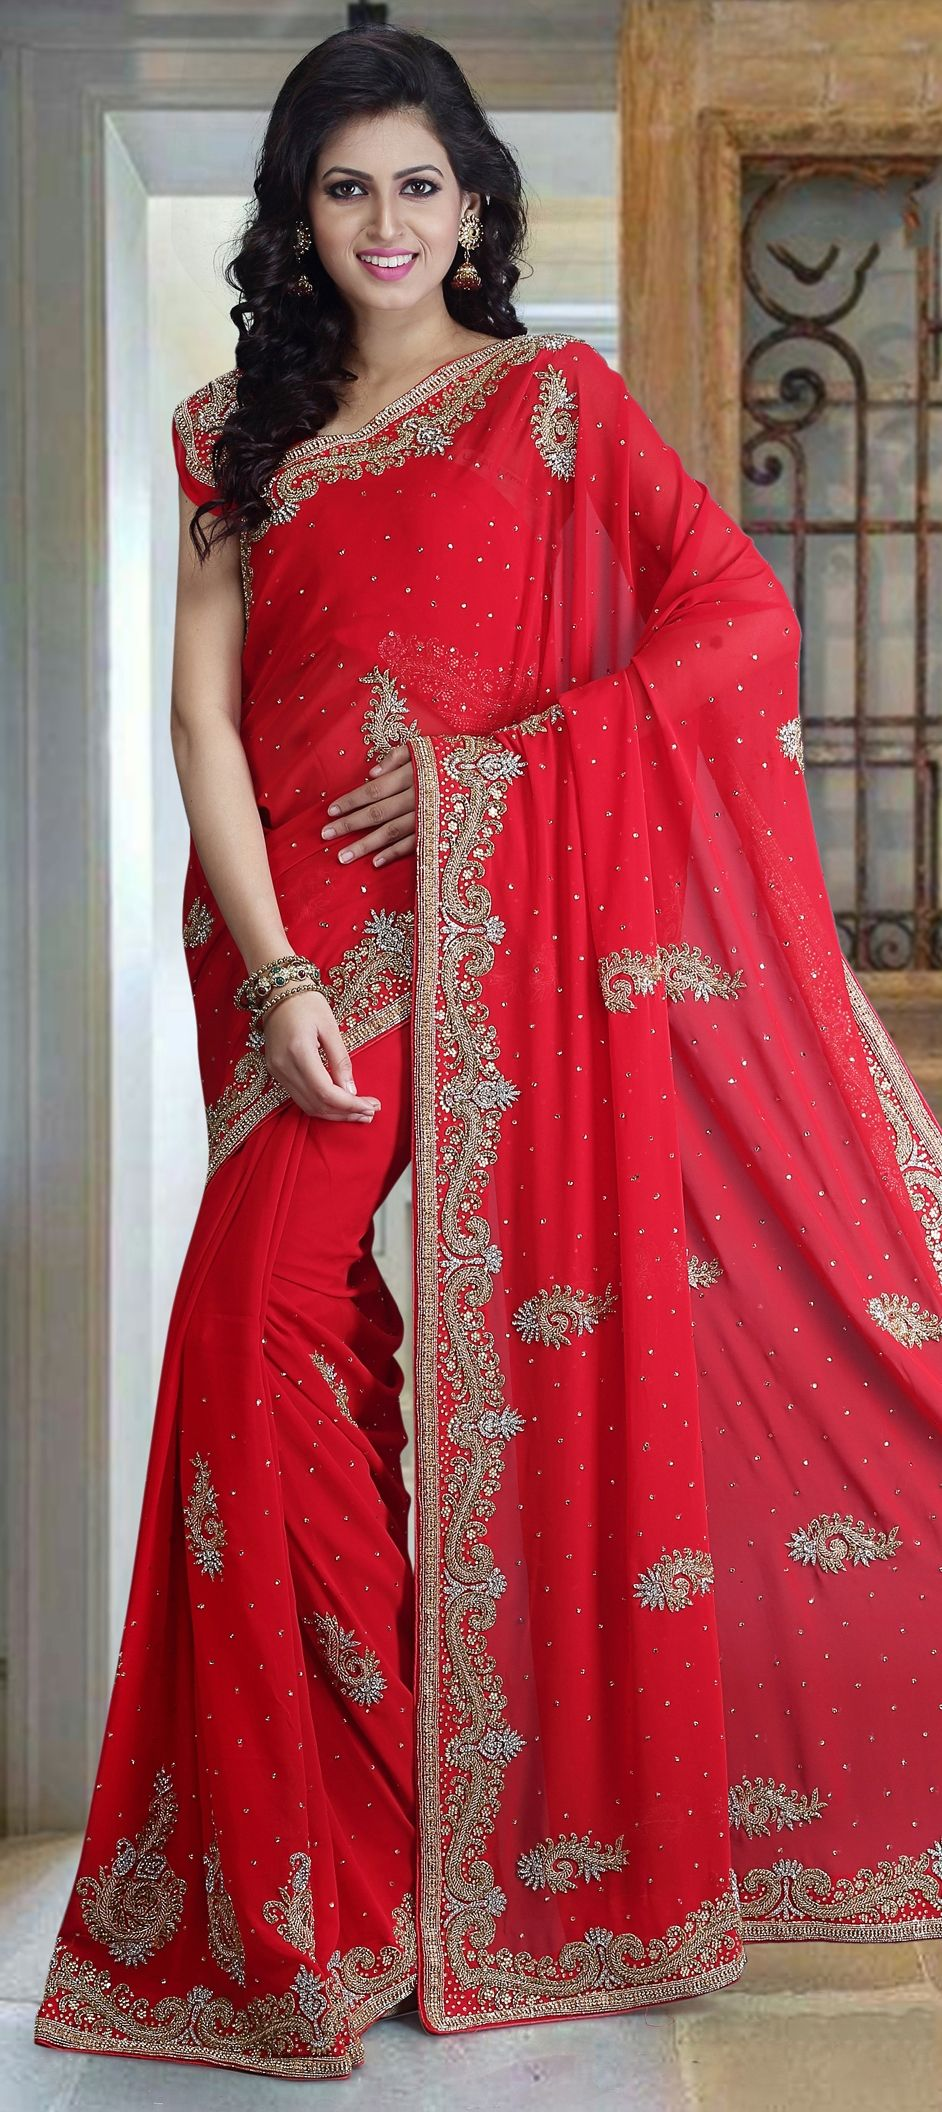 783d8d56fb 1517446: Bridal, Wedding Red and Maroon color Georgette fabric Saree